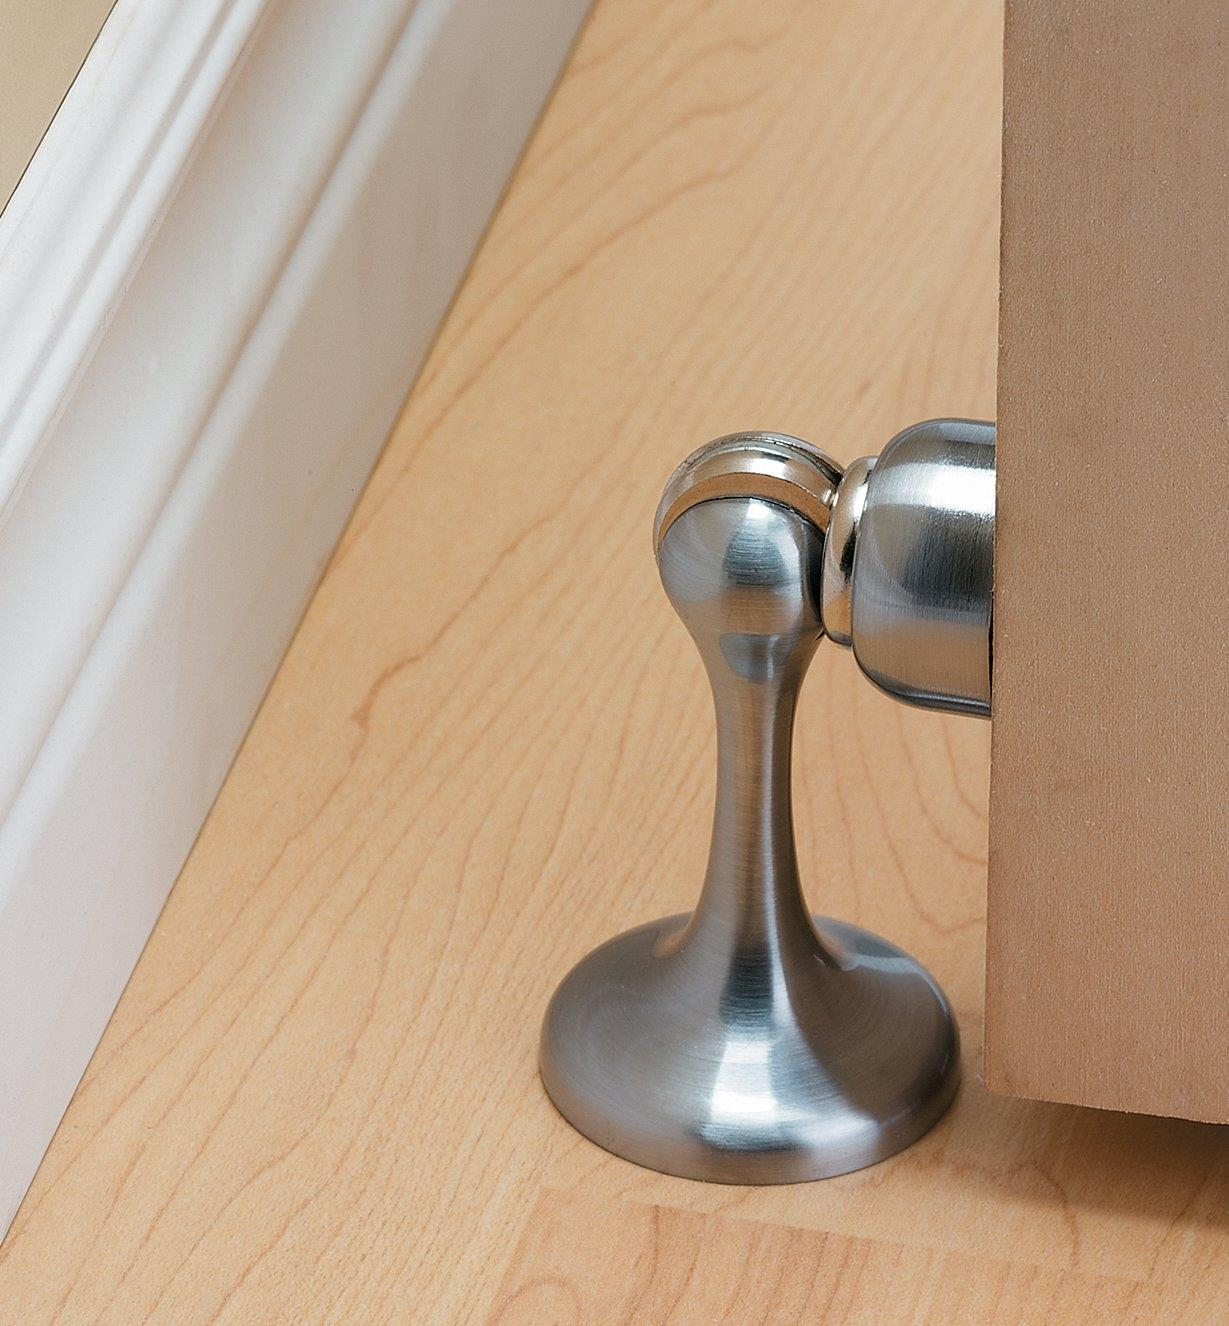 Satin chrome doorstop installed on a floor, holding a door open